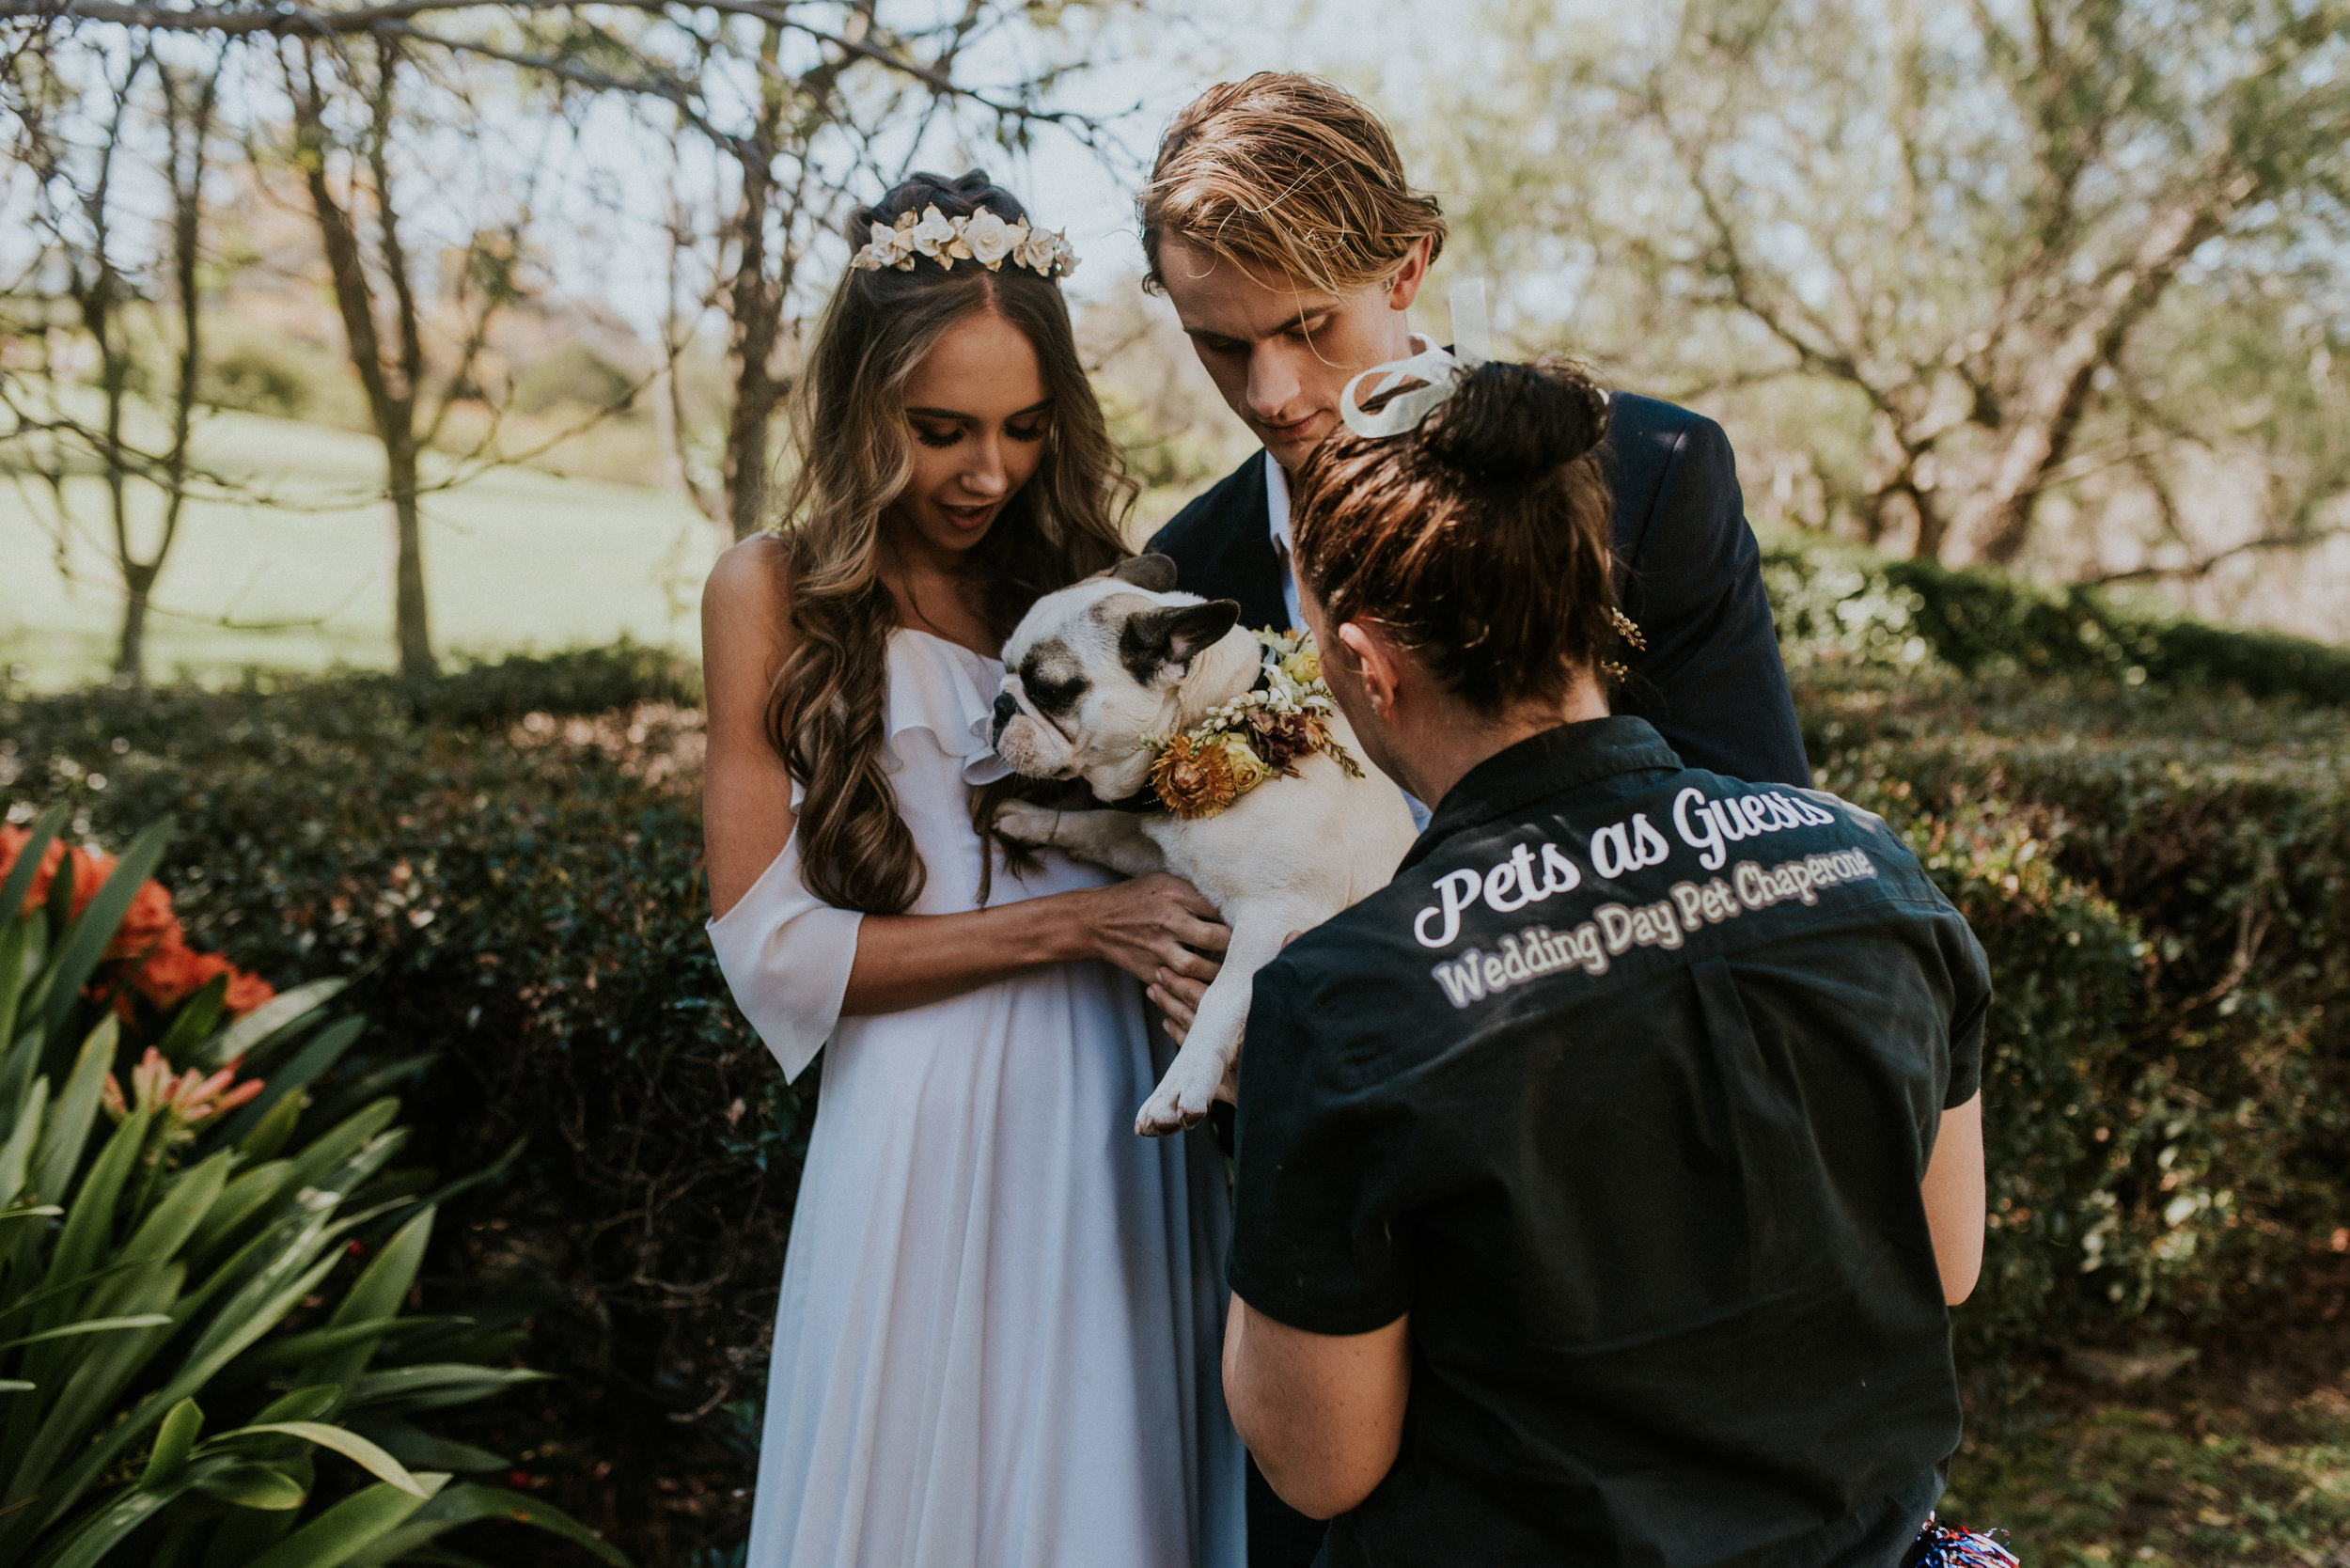 Pet Chaperone -   Pets as Guests: Wedding Day Pet Chaperone